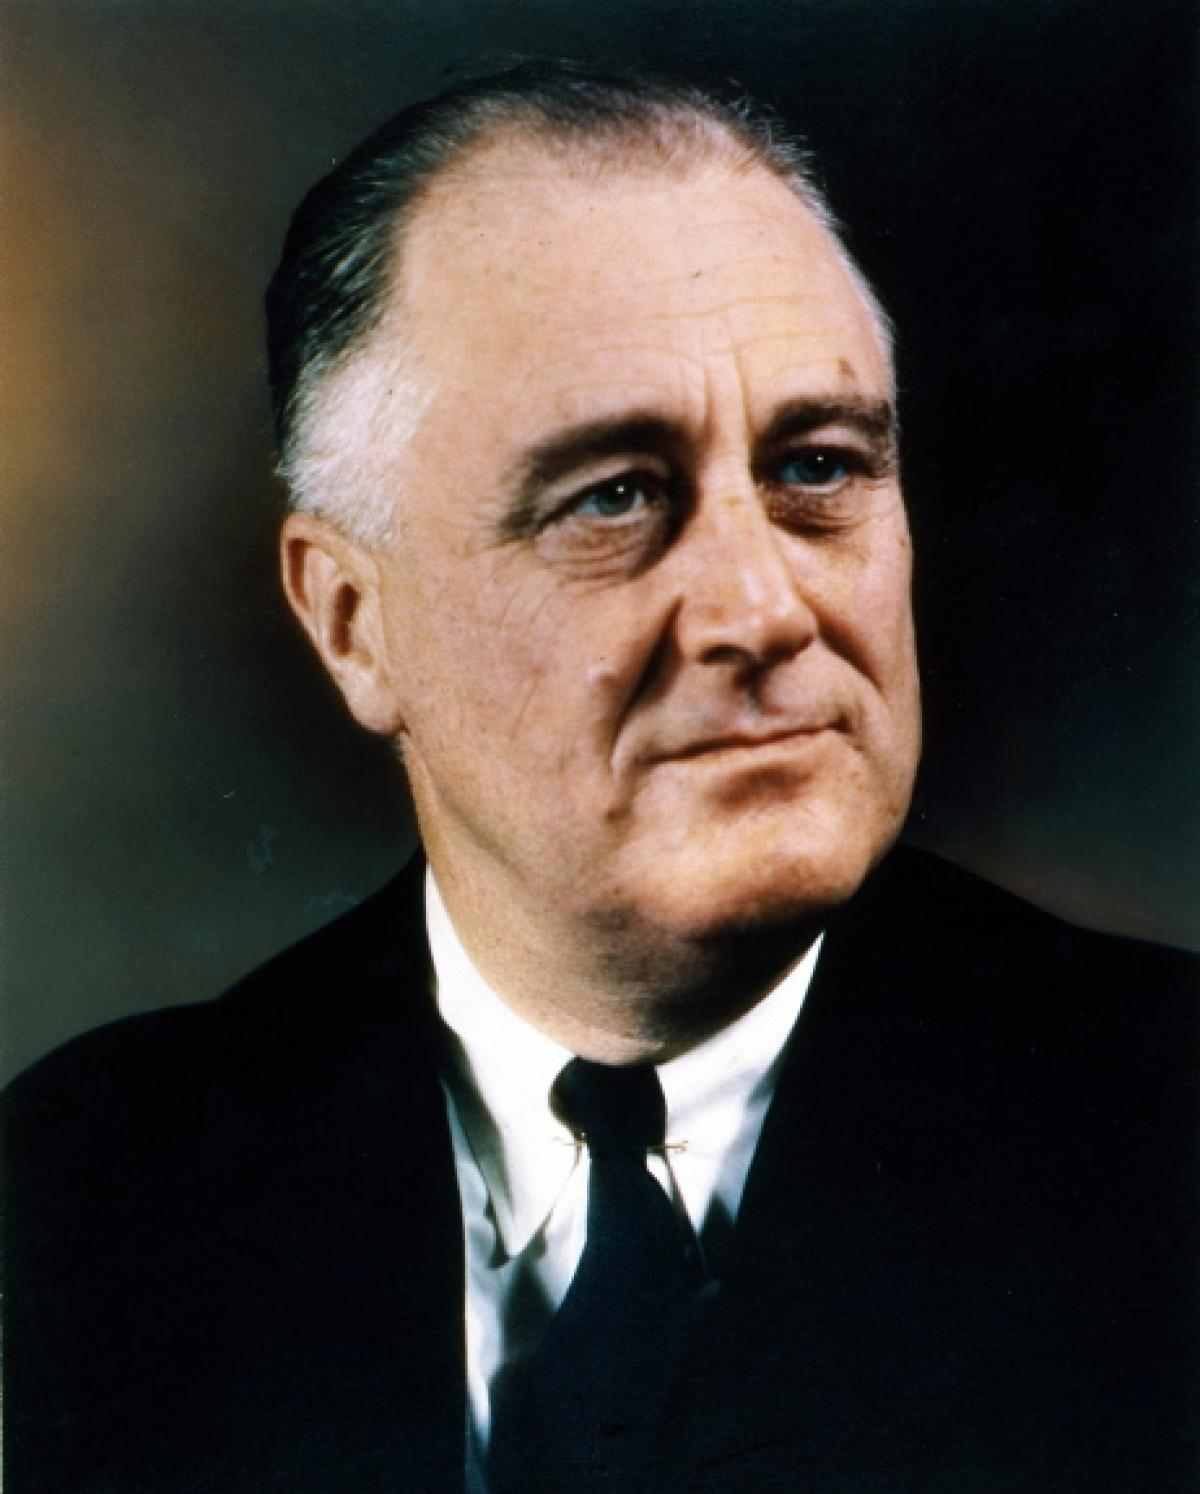 Franklin delano roosevelt photos So What Was Fashion? Jonathan Walford's Blog